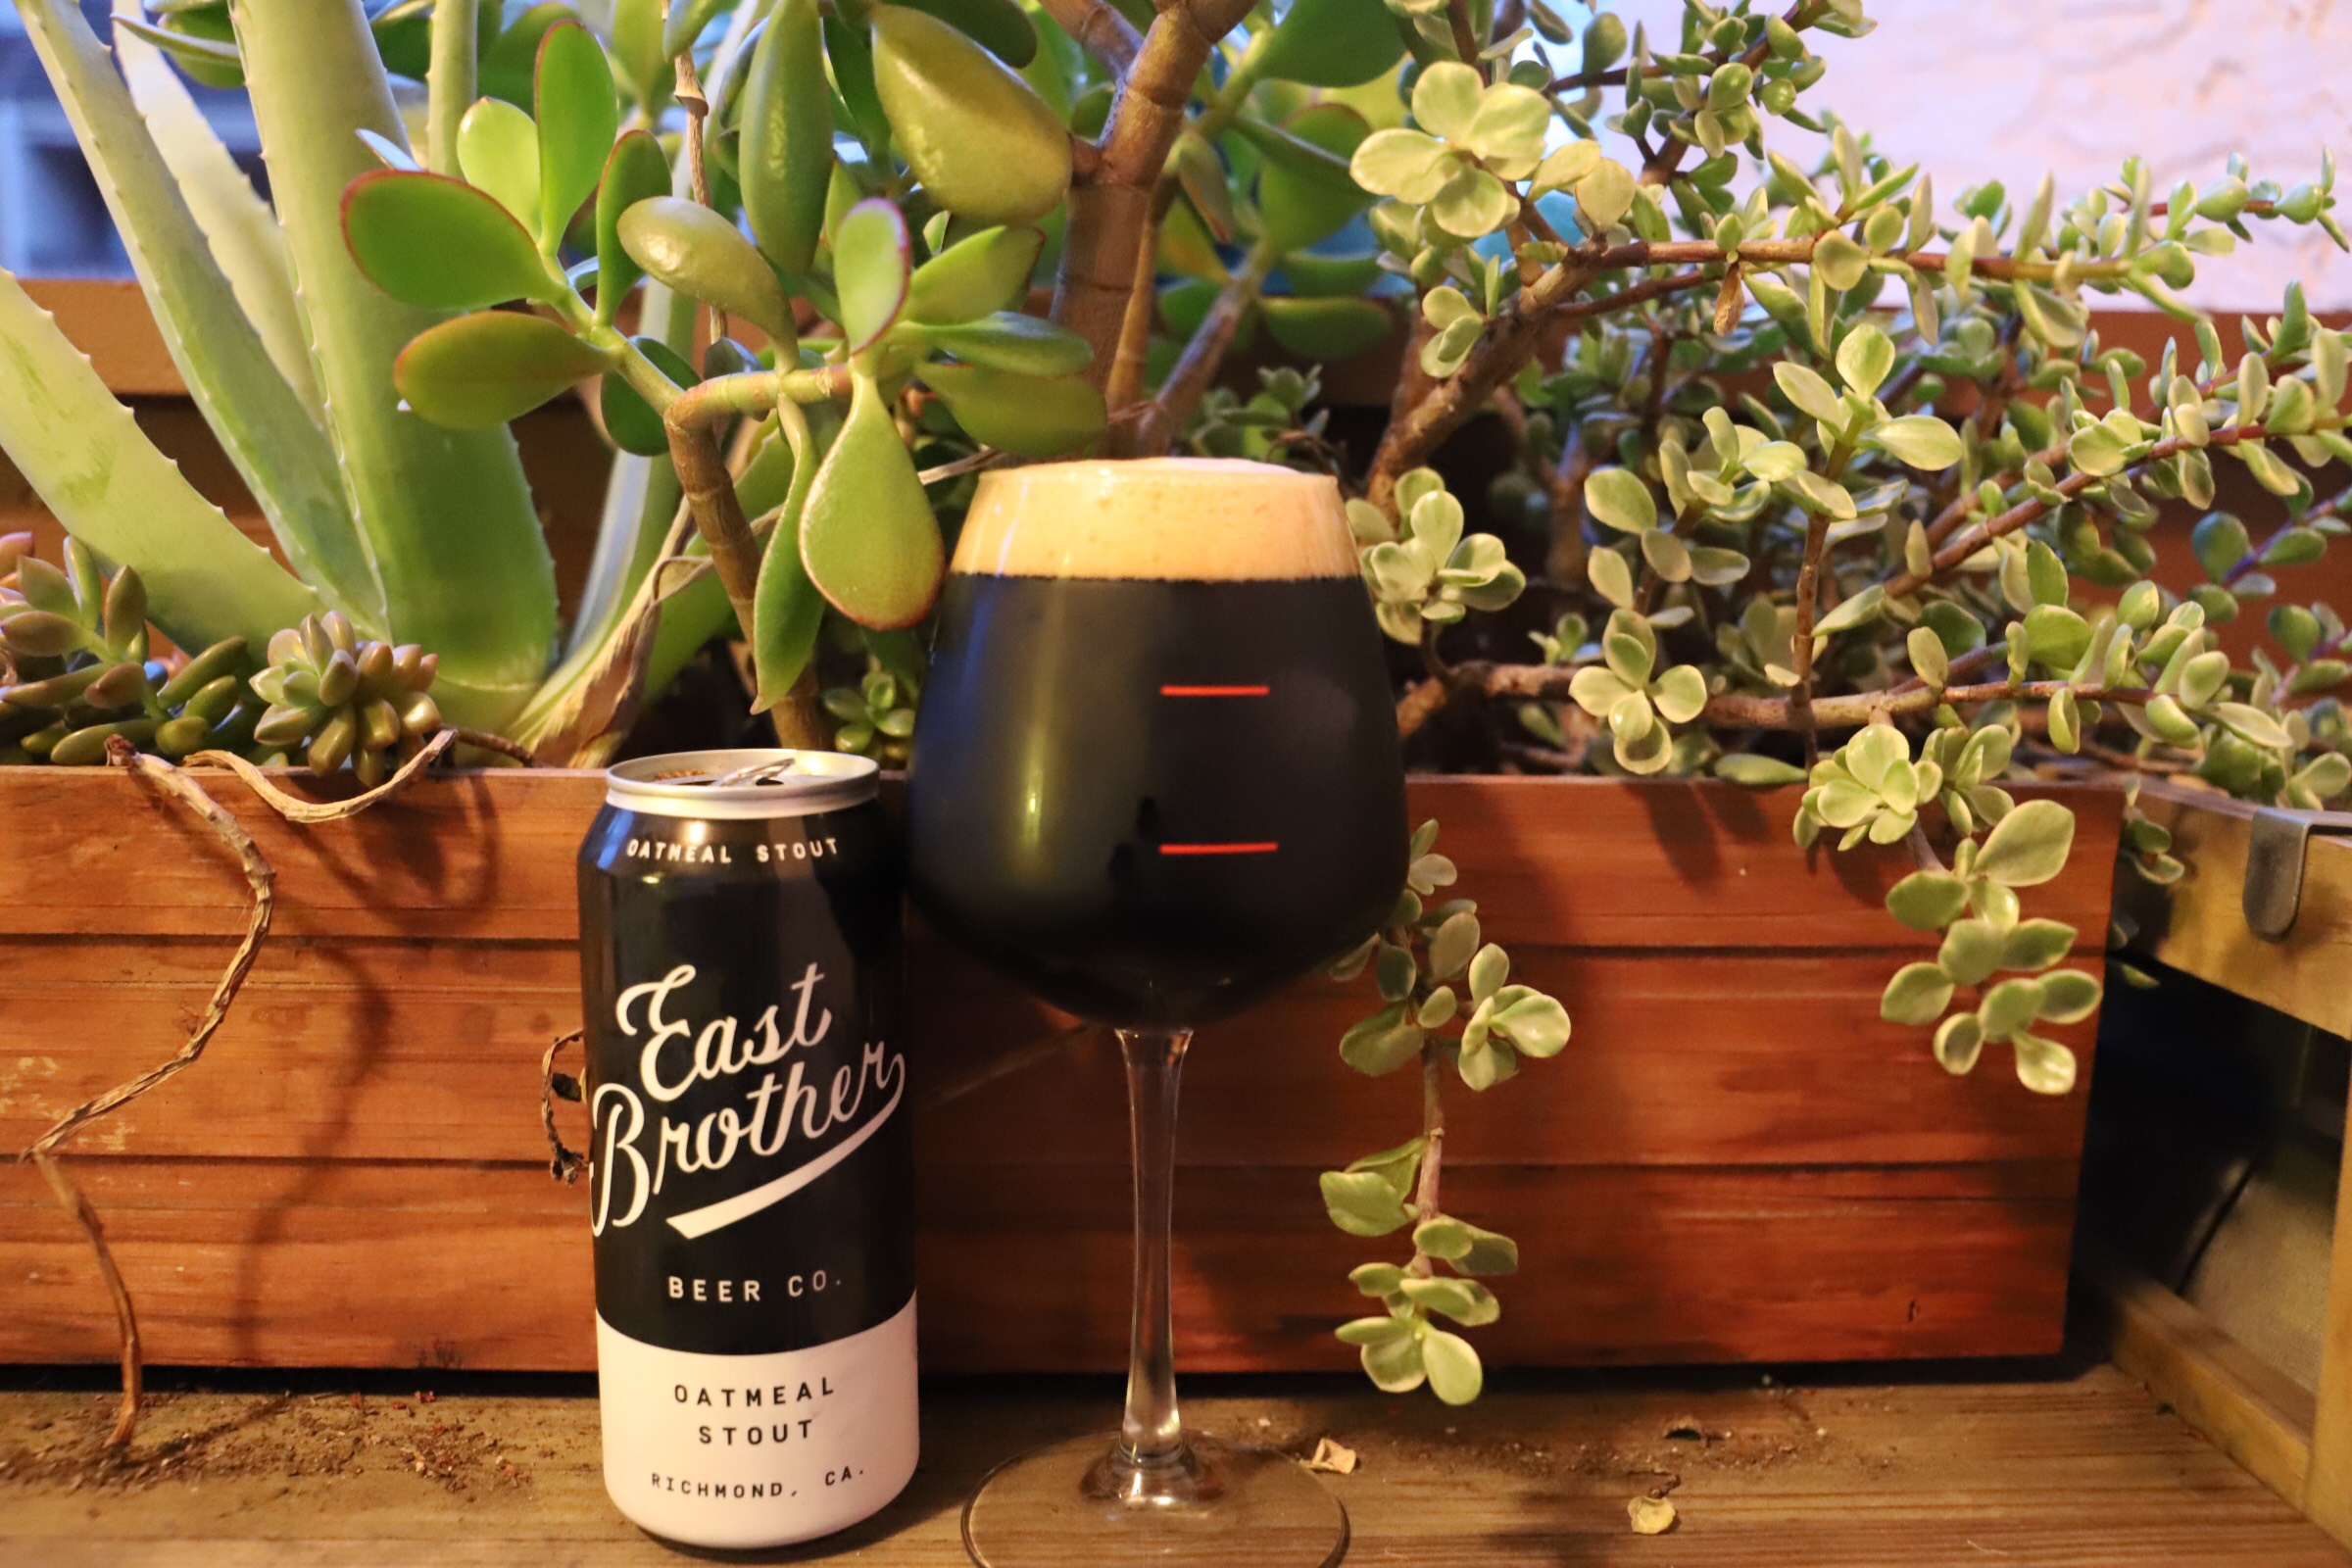 East Brothers Beer Co. Oatmeal Stout